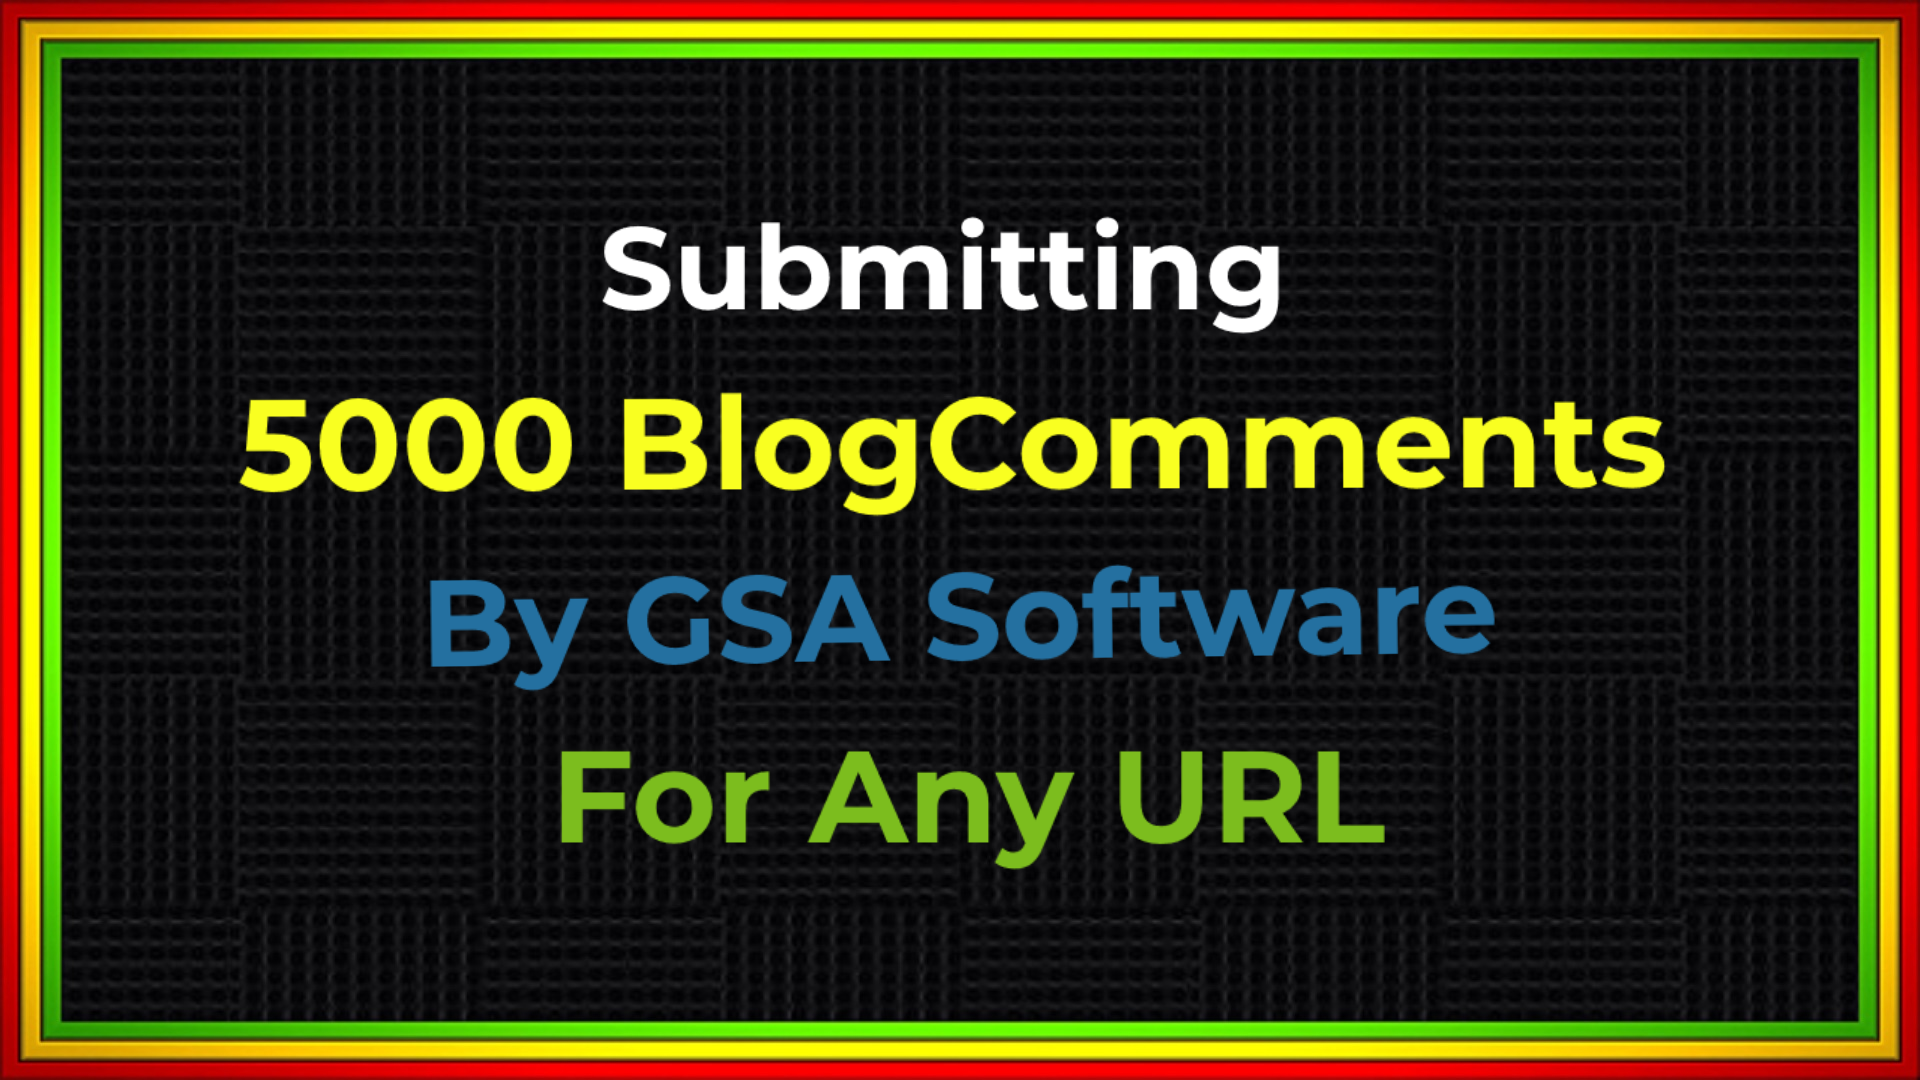 Submitting 5000 Blog Comments By GSA for any URL